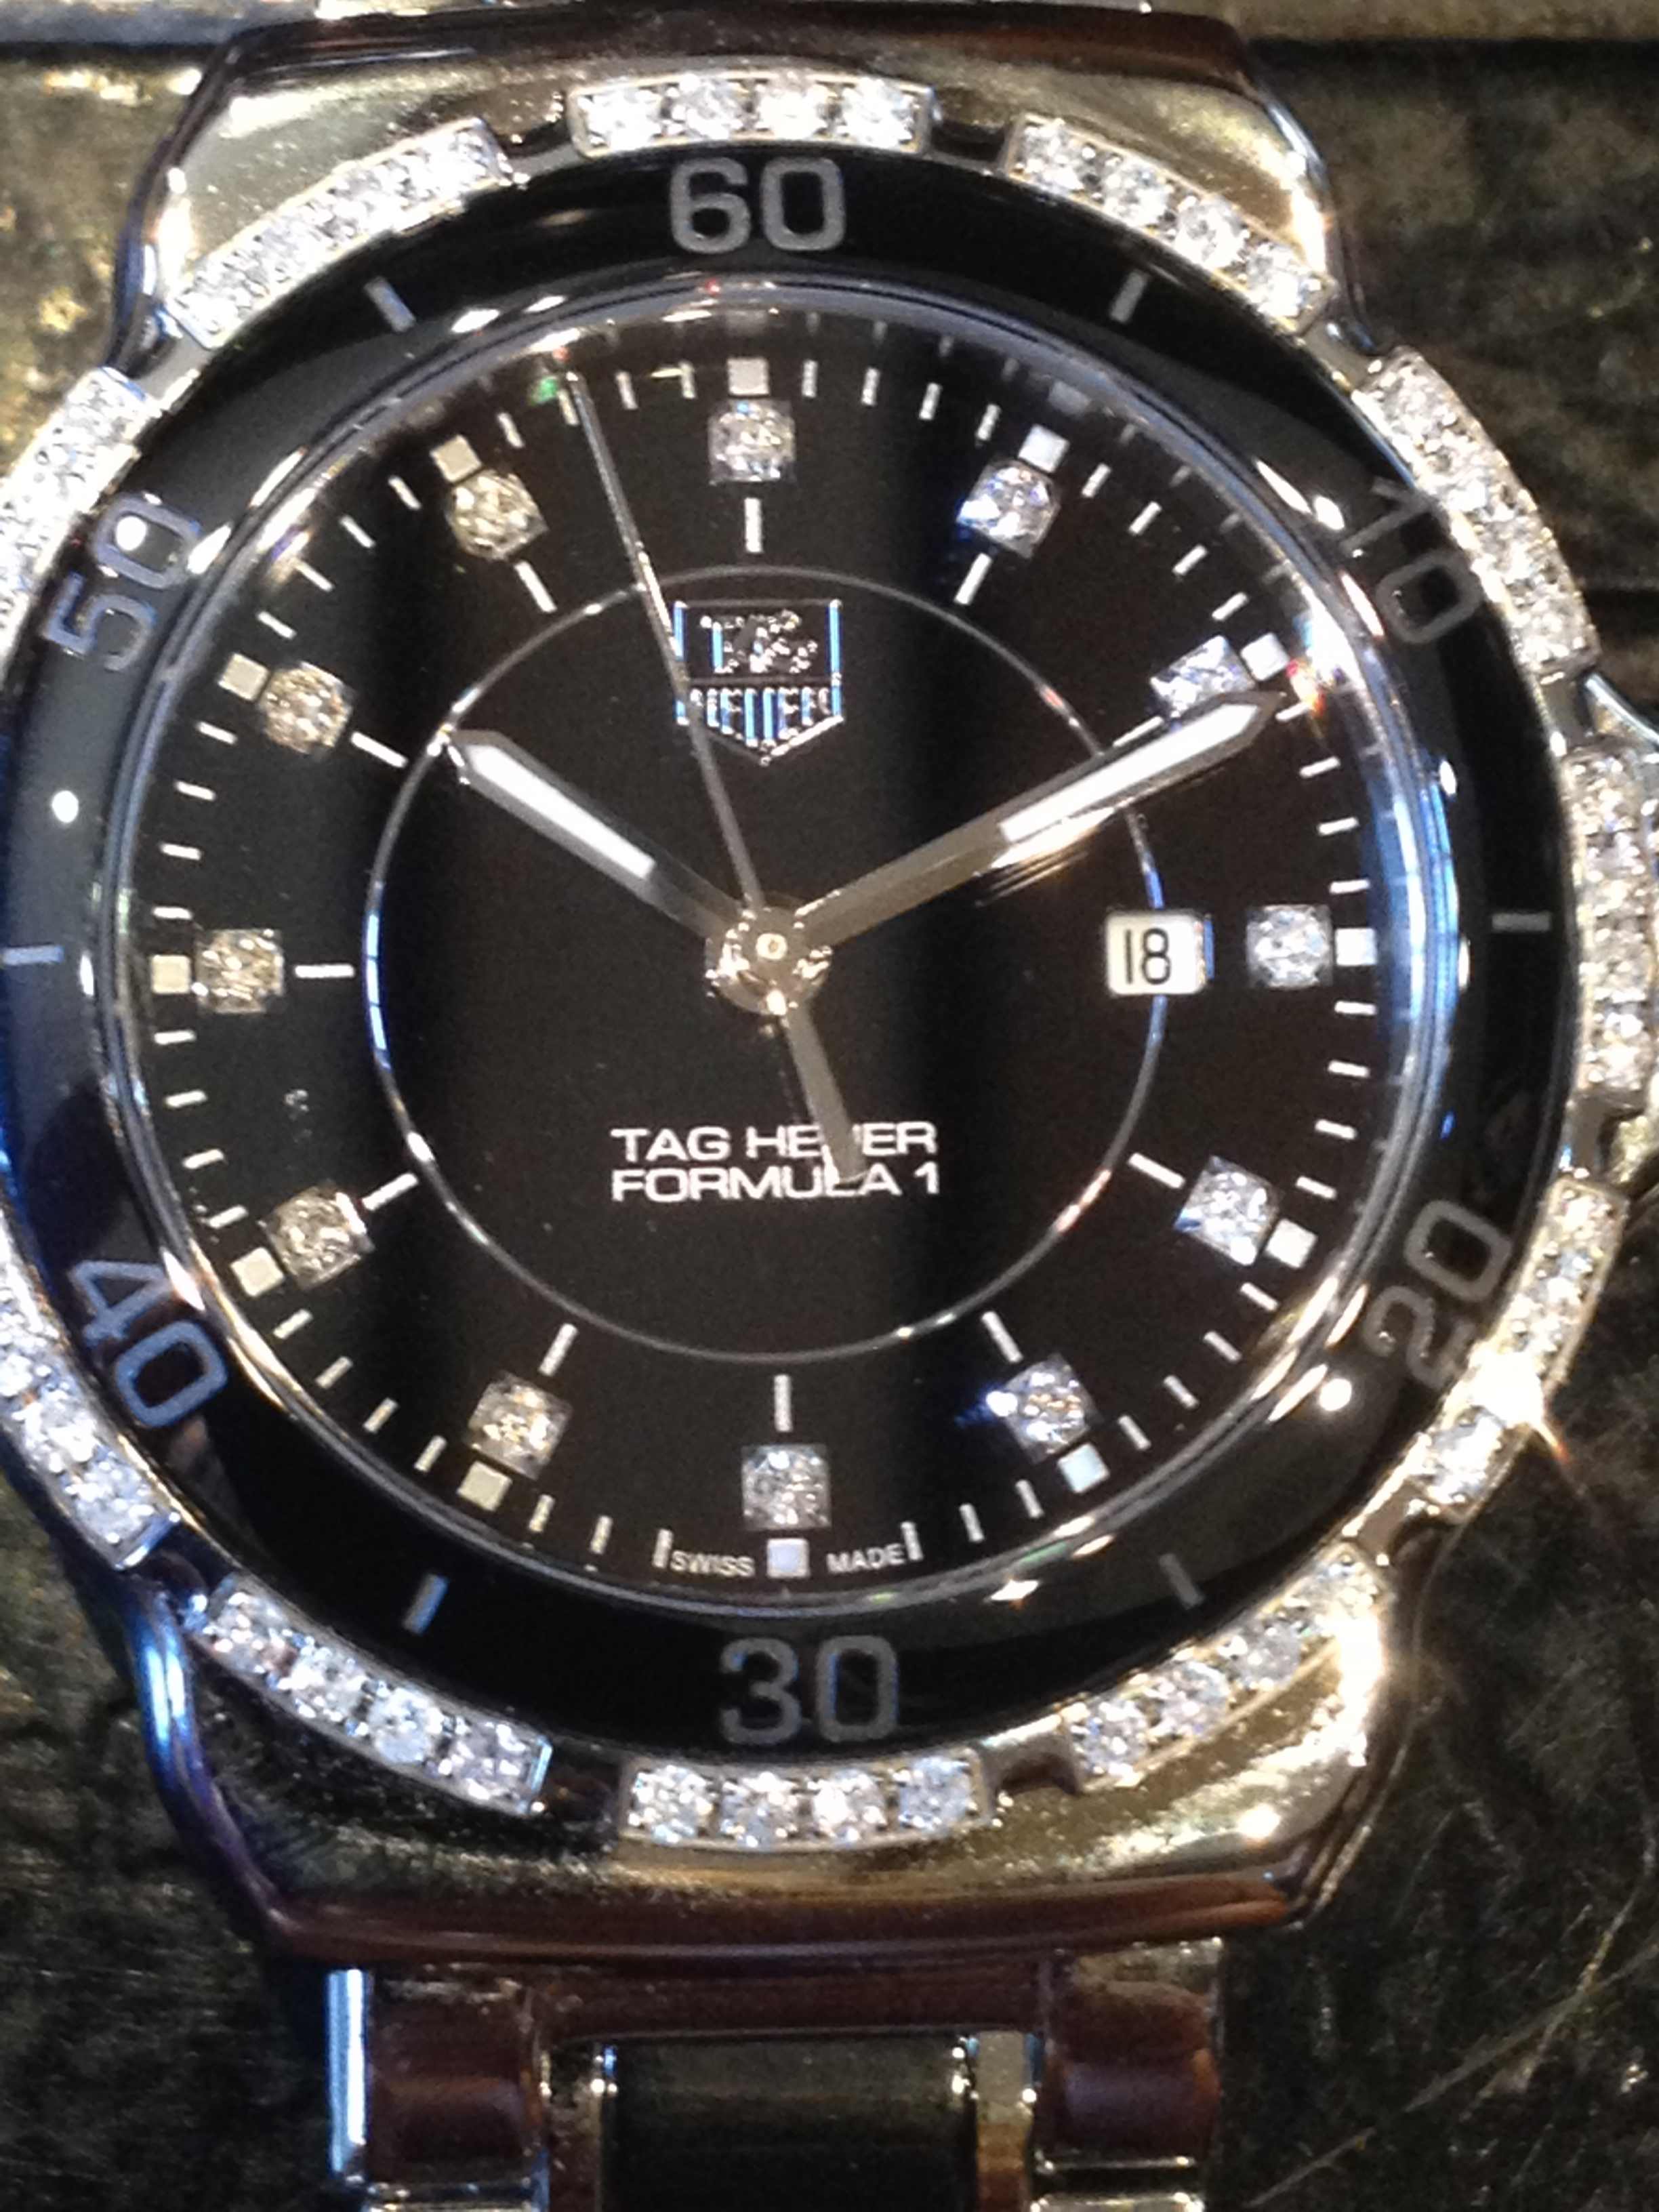 ladies watch of the week tag heuer formula 1 diamond ceramic tag heuer formula 1 diamond ceramic watch